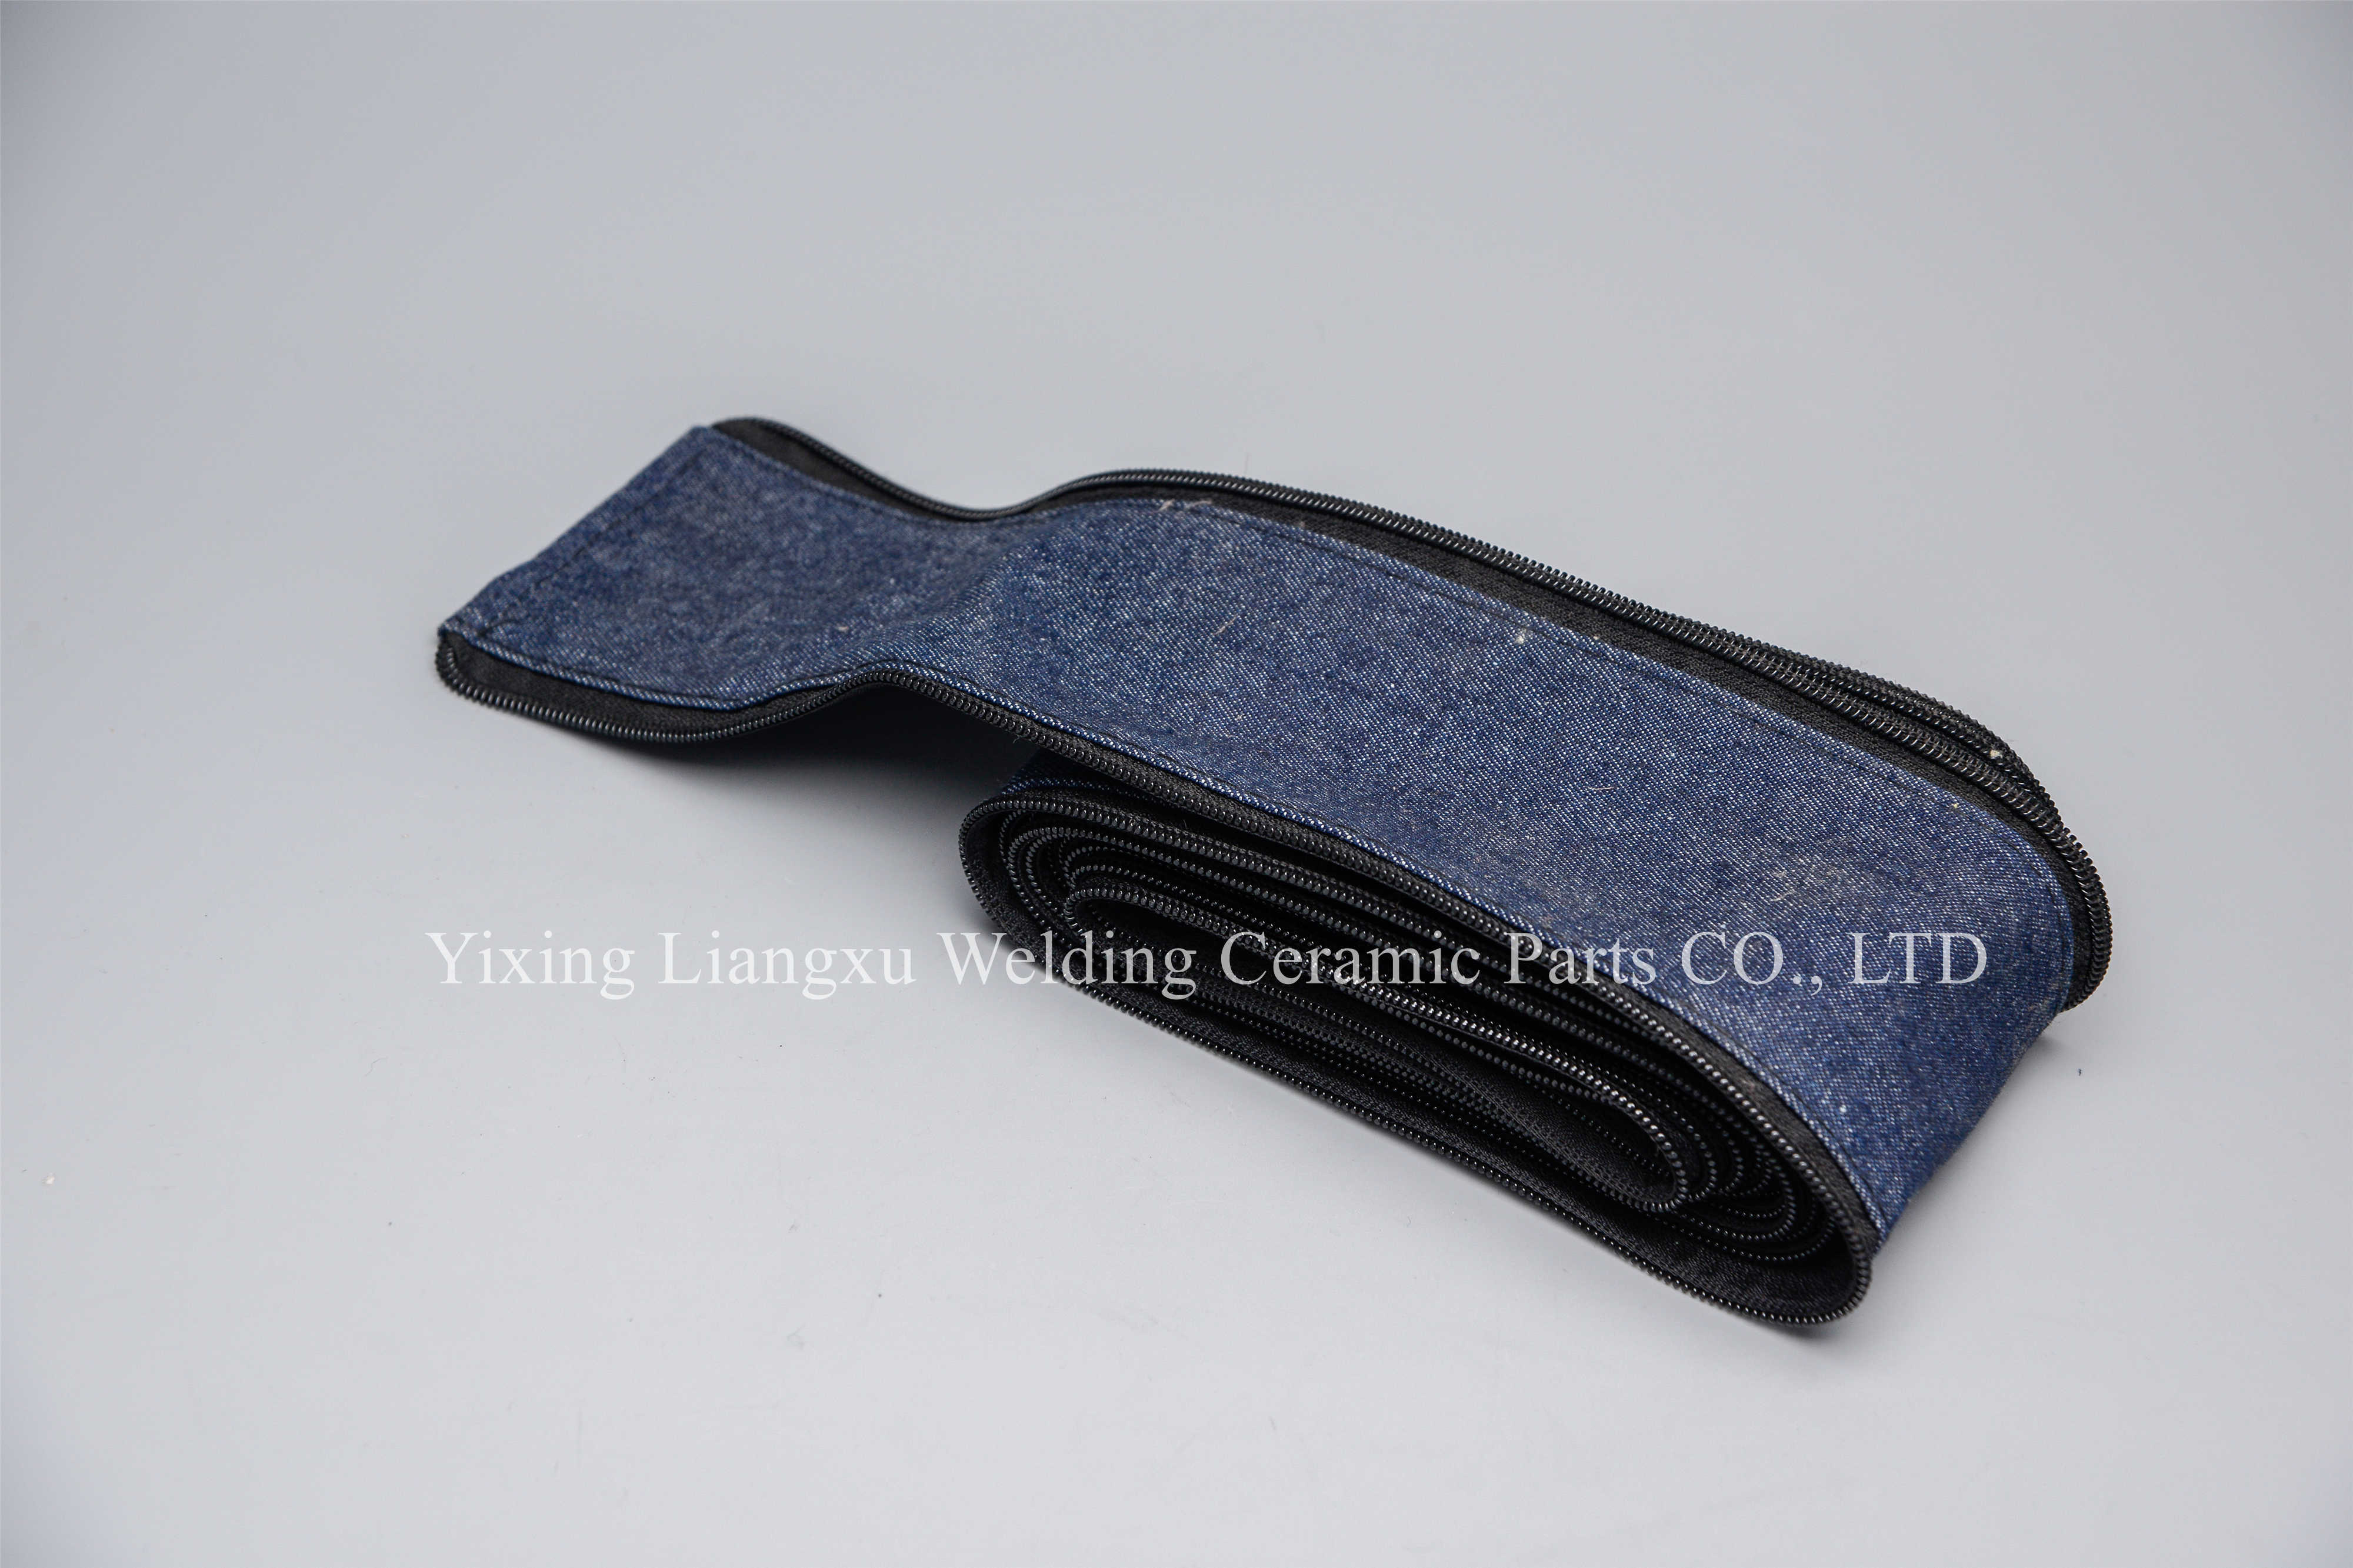 TIG Welding Torch cable cover sheath with zipper